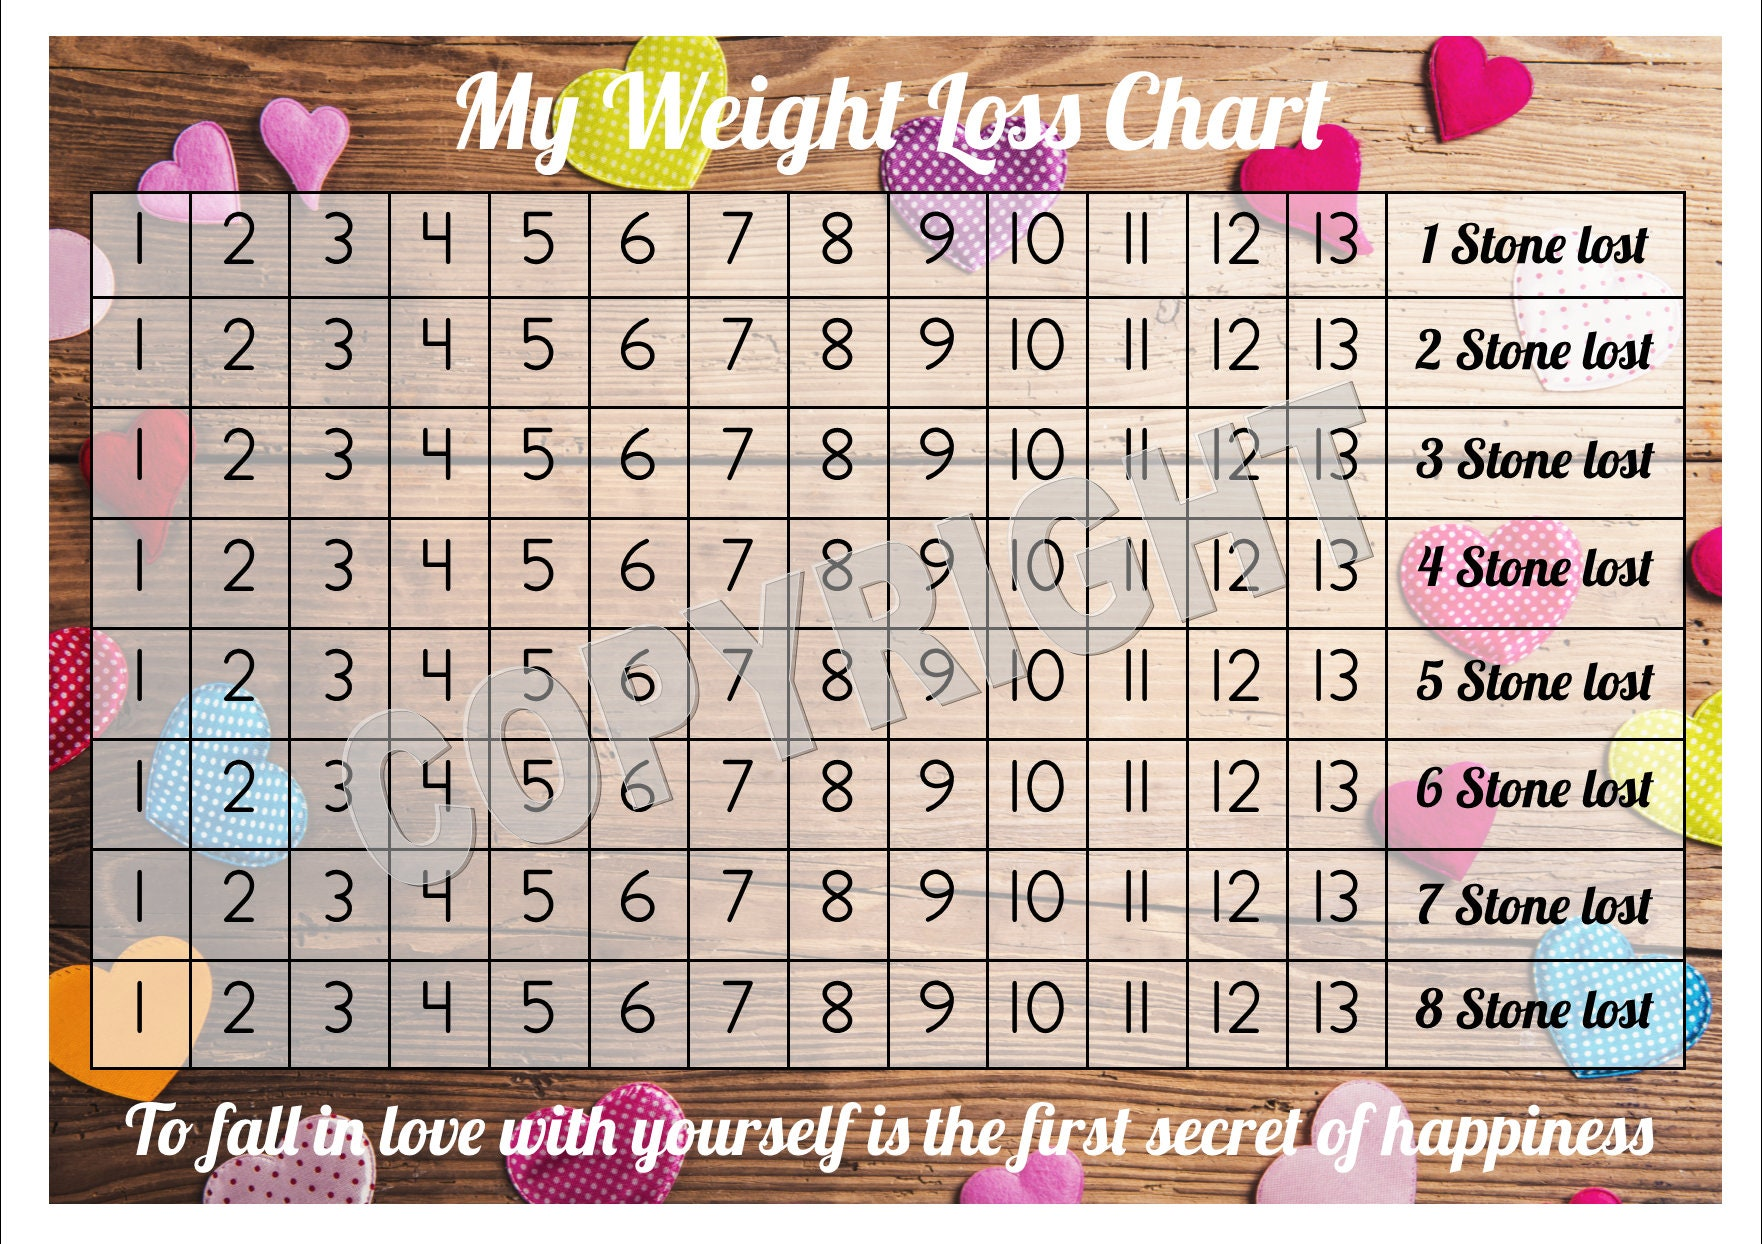 Weight loss chart tracker 8 stone comes with star description weight loss chart tracker nvjuhfo Image collections